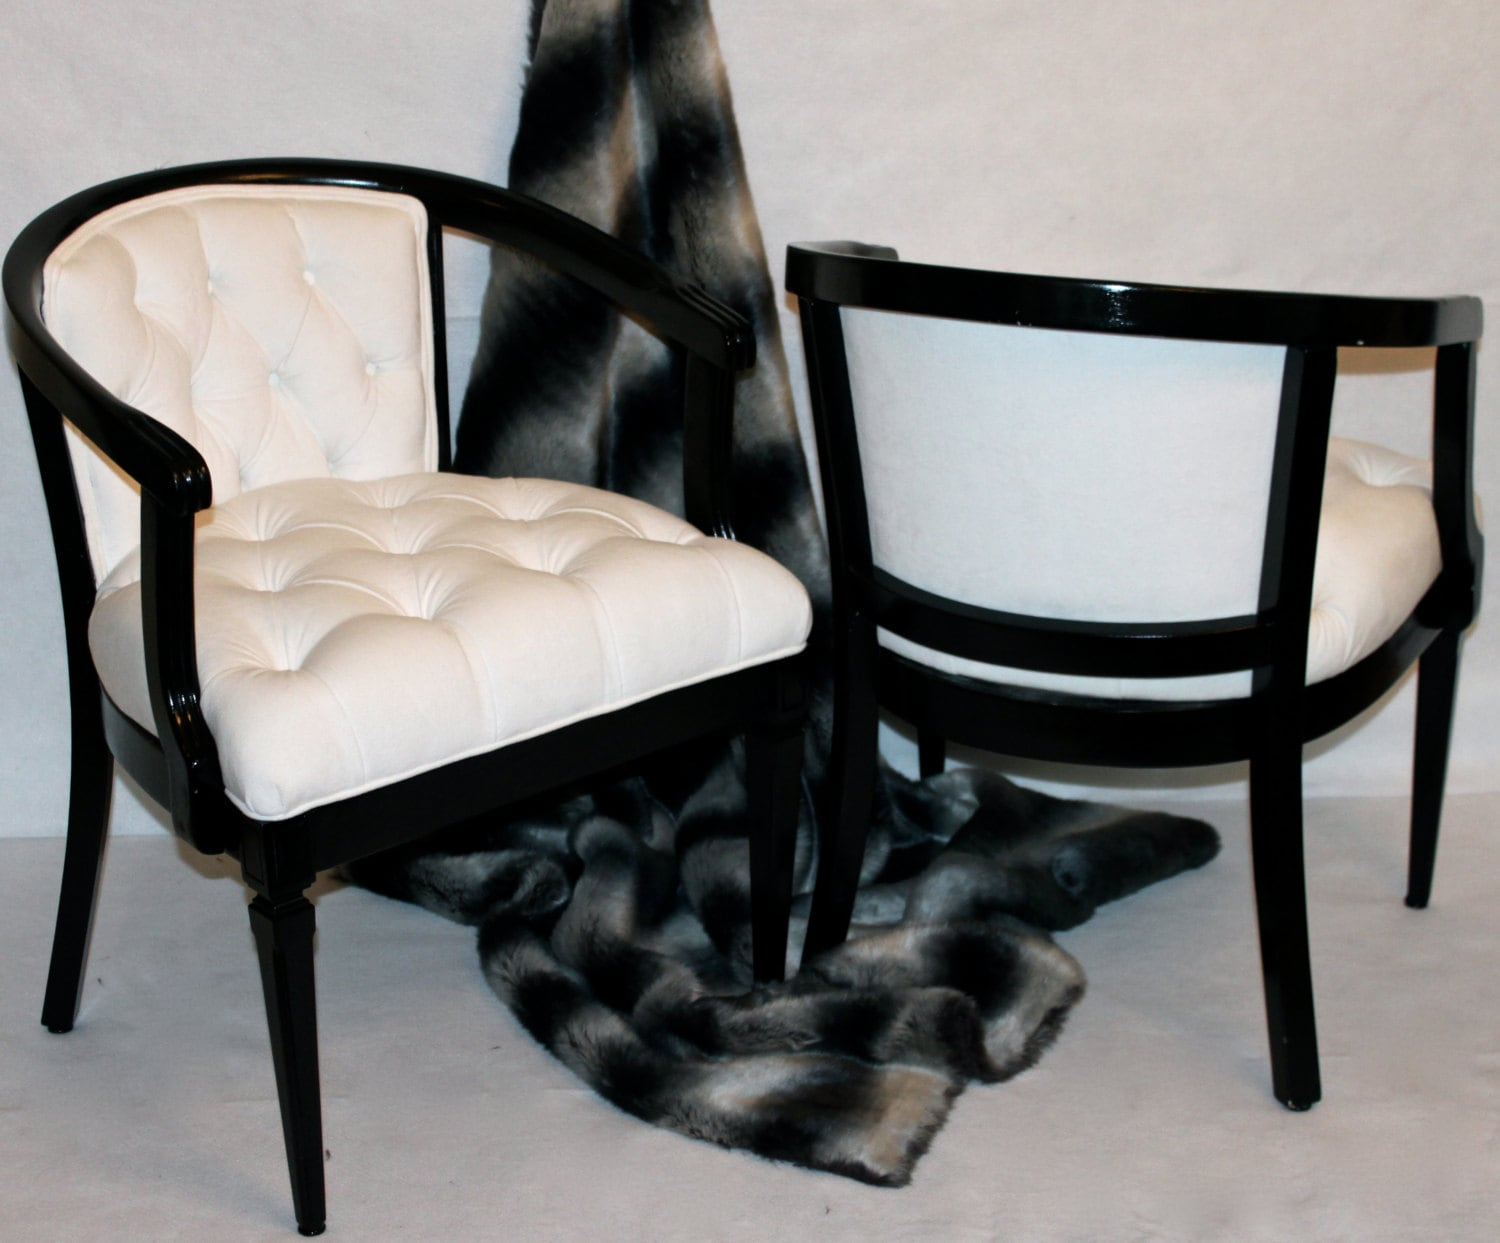 White Barrel Chair Sold Can Replicate Pair Of Vintage White Velvet Barrel Chairs